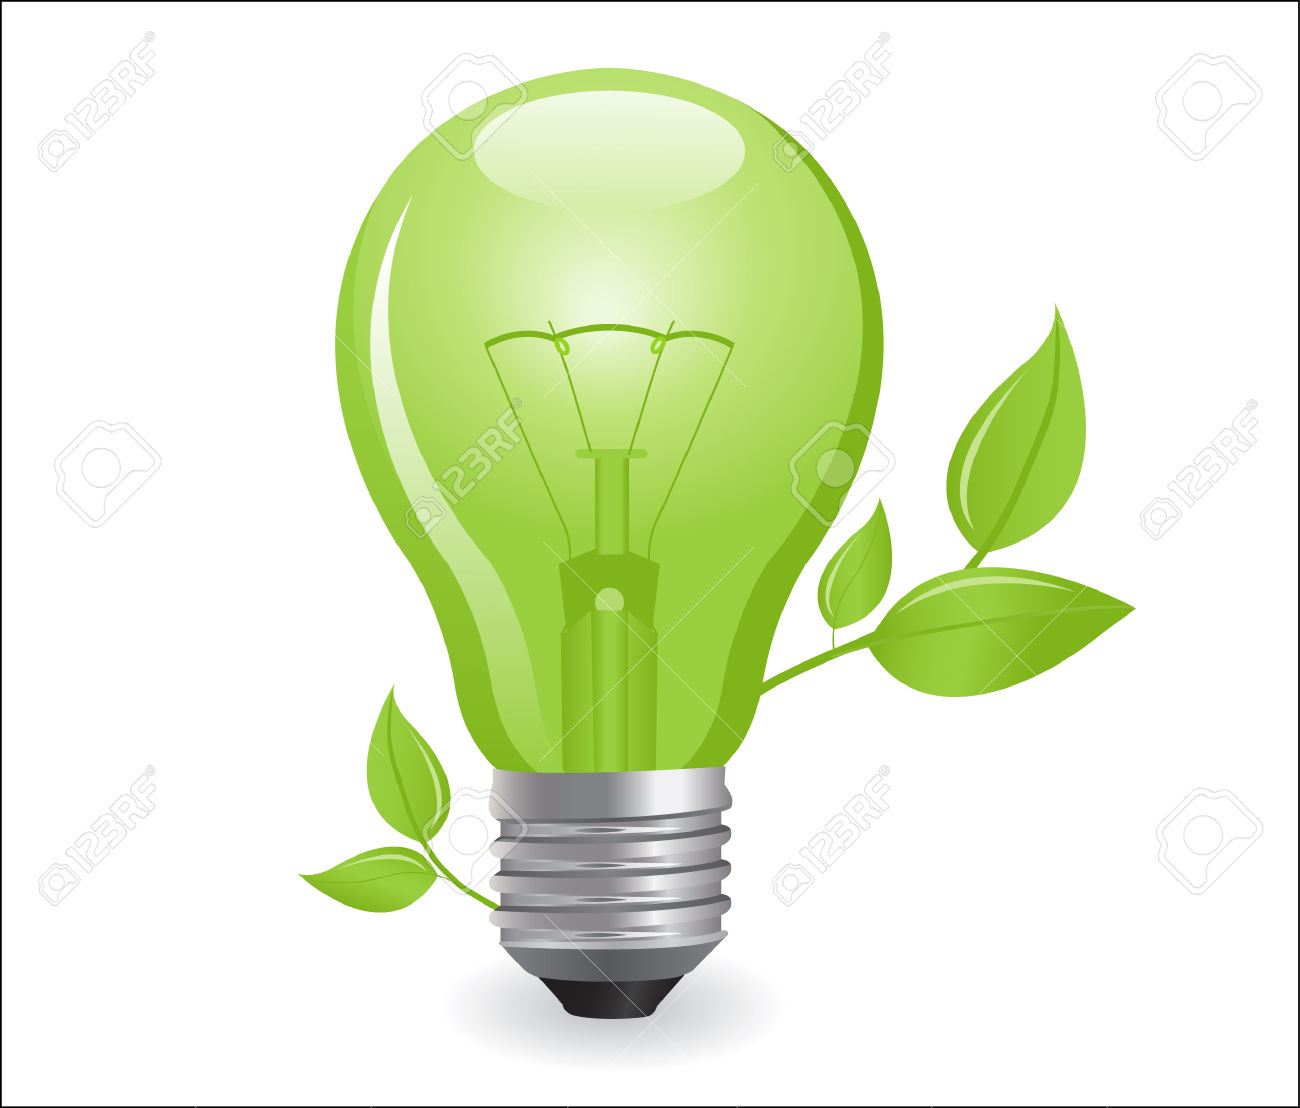 Electric Light Bulb Royalty Free Cliparts, Vectors, And Stock.